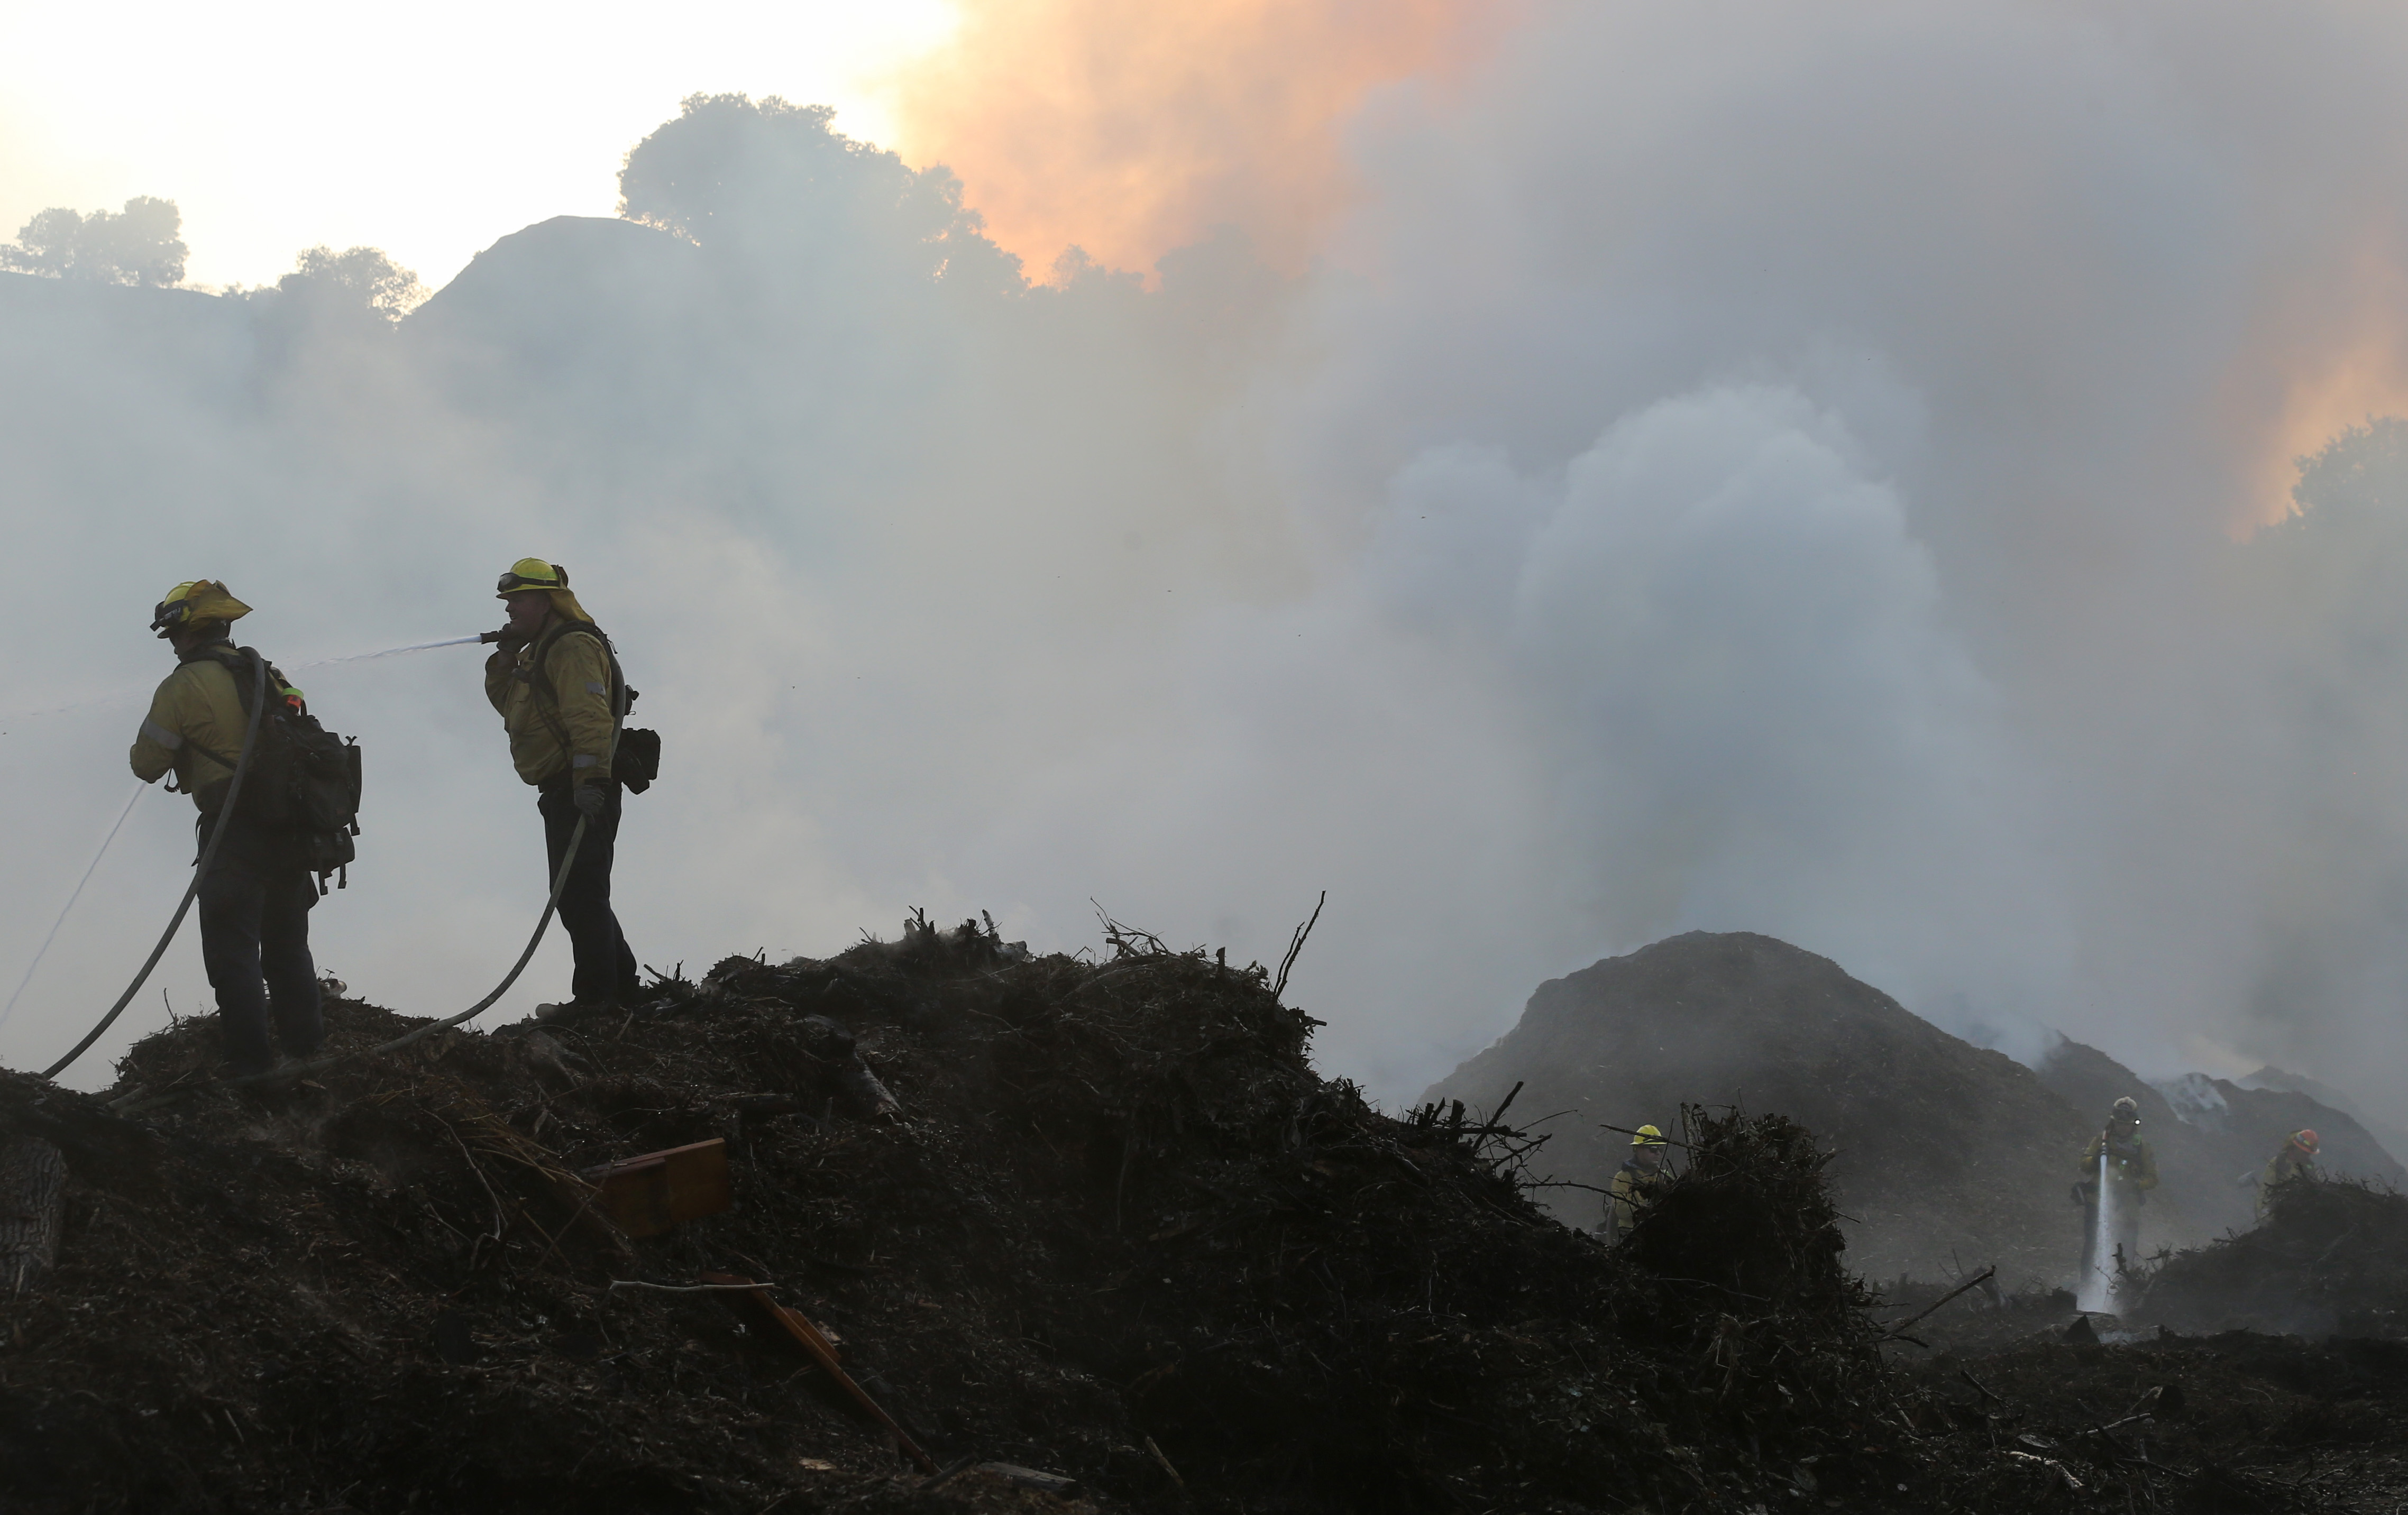 Wildfire Threat Diminishes After Days of Flames and Smoke in Southern California